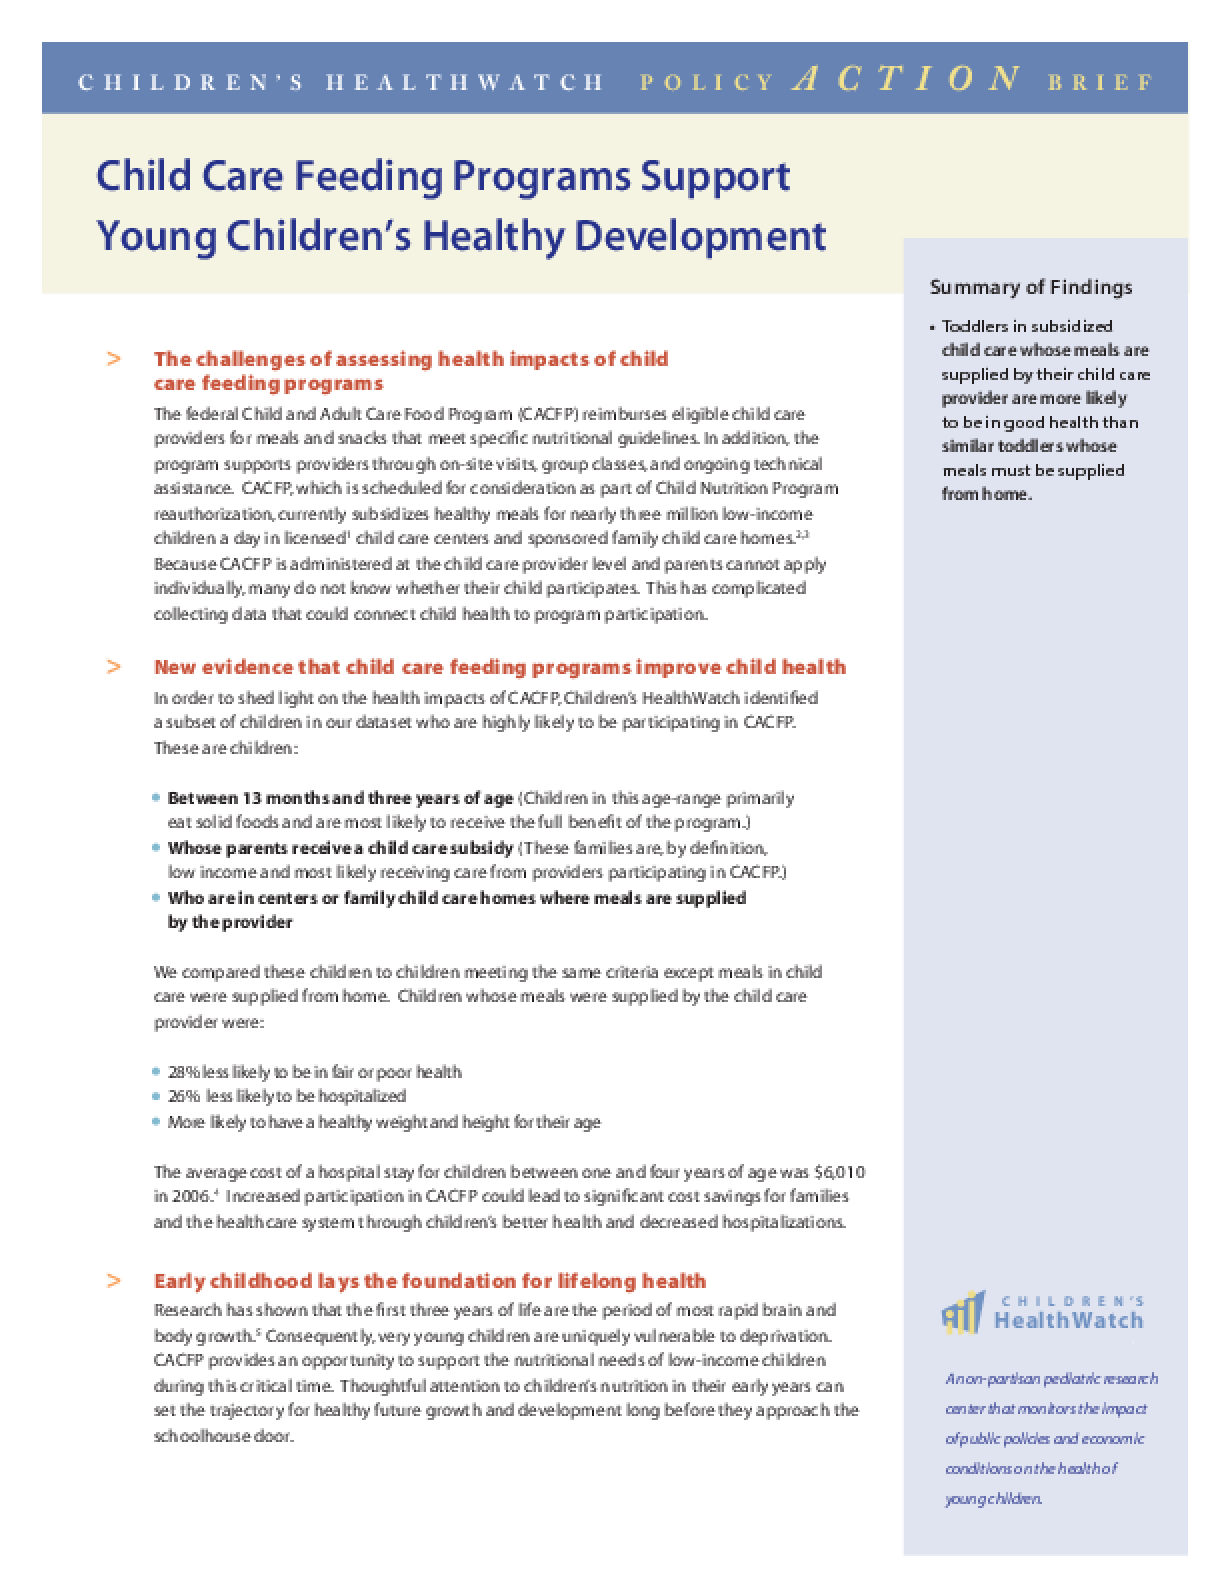 Child Care Feeding Programs Support Young Children's Healthy Development